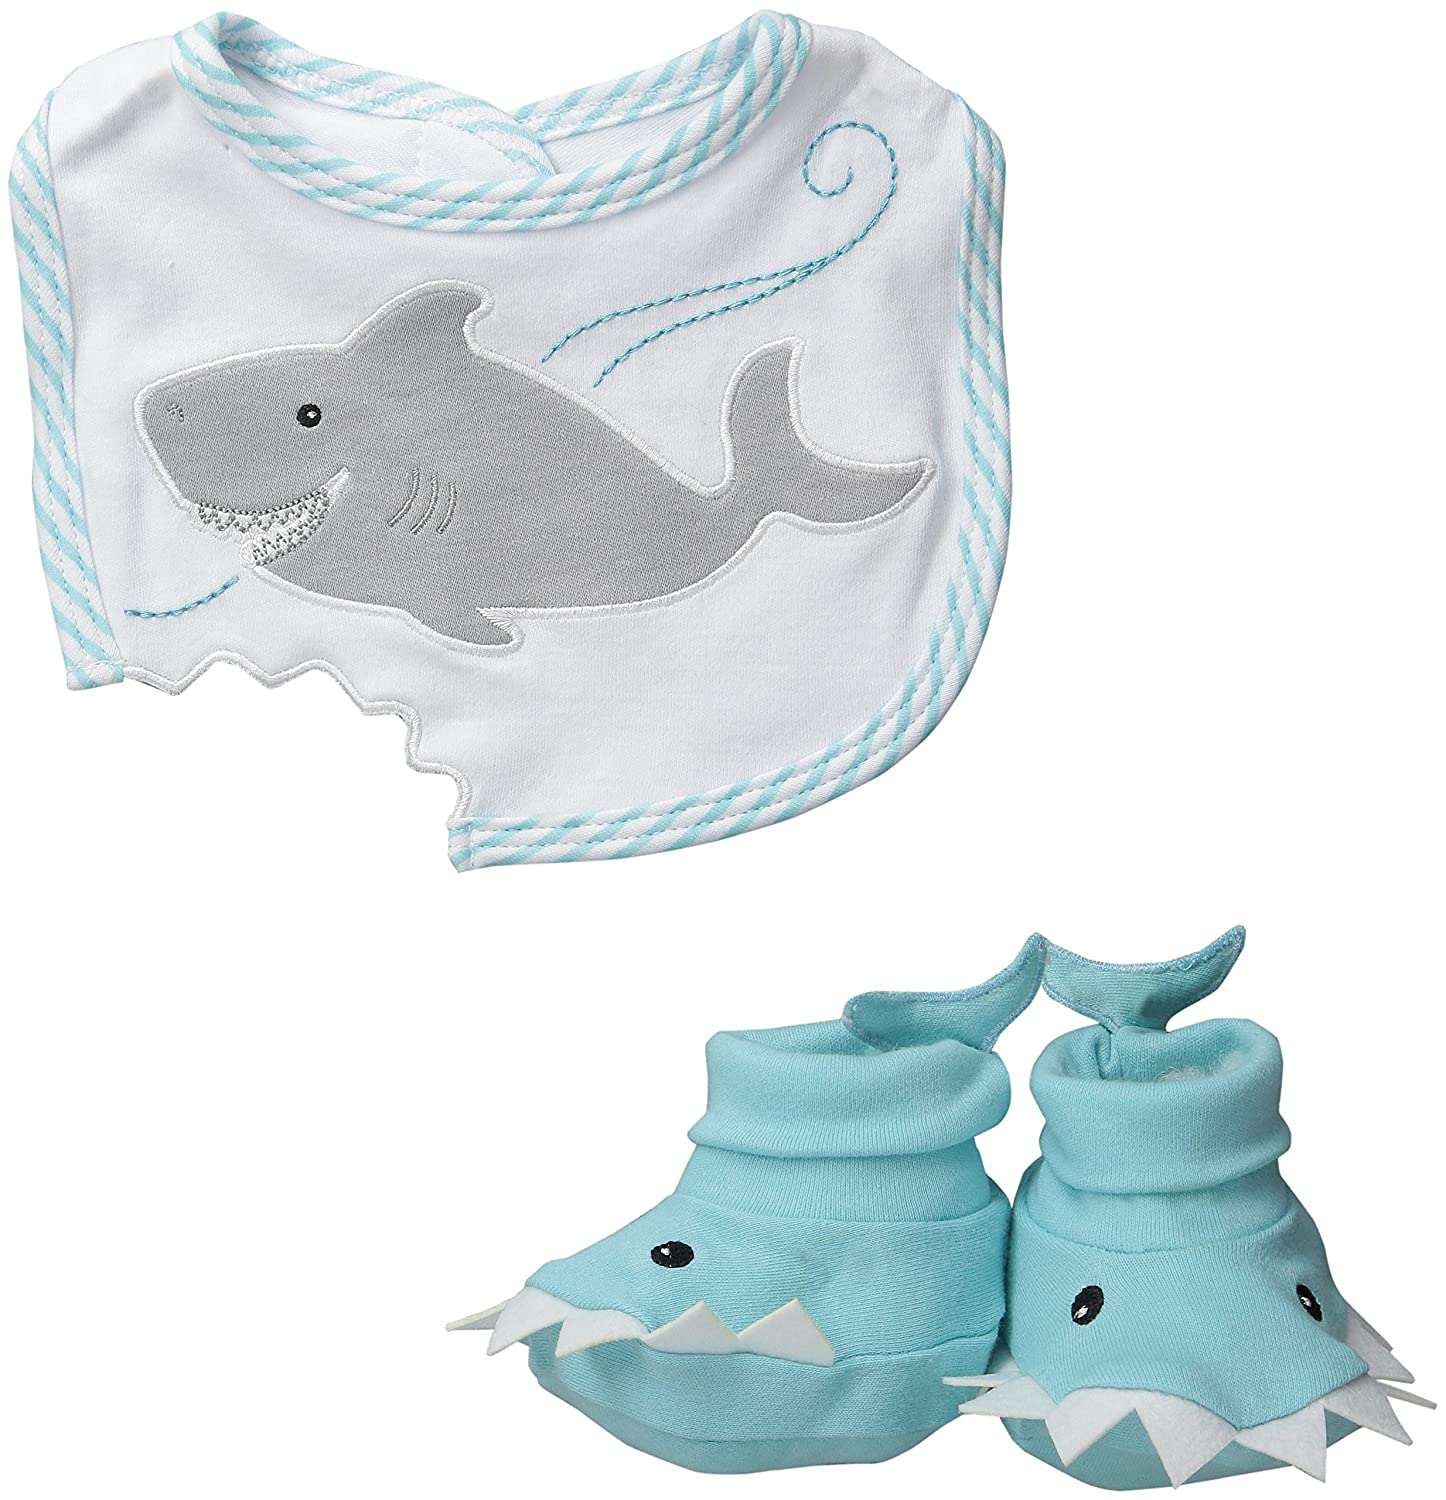 Baby Aspen Bib and Booties Gift Set, Chomp and Stomp Shark BA15030BL